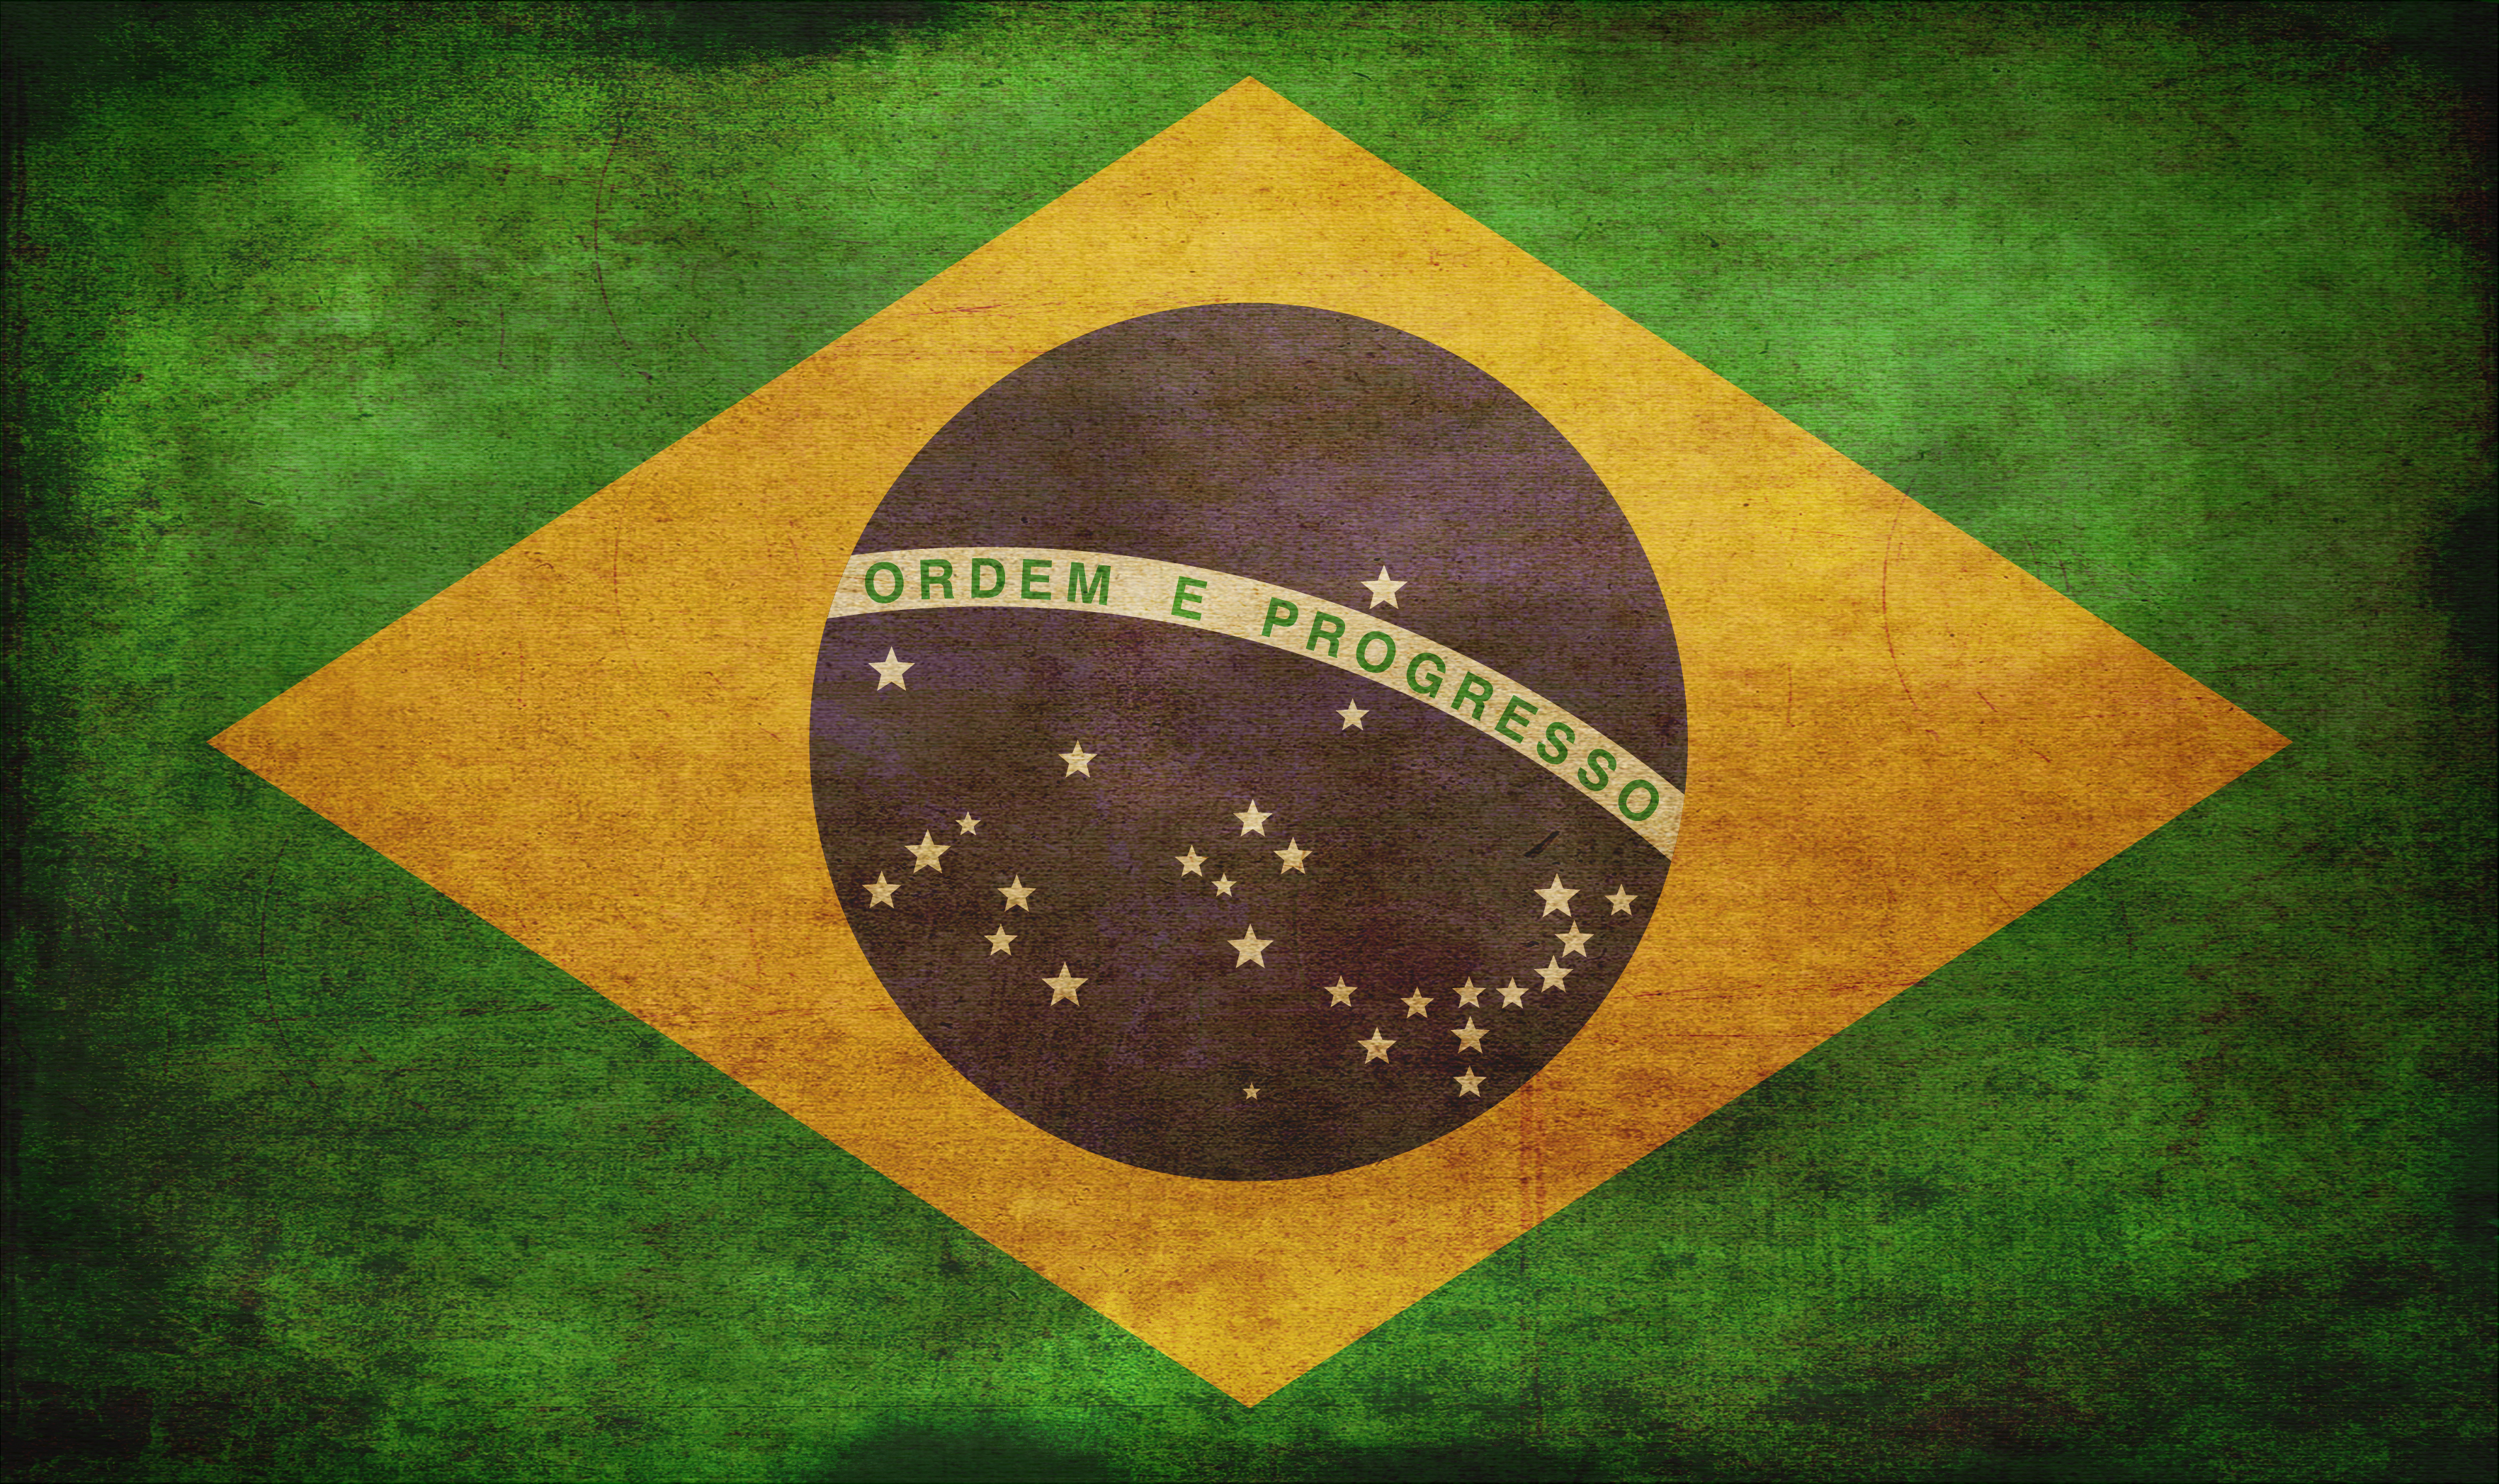 Brazil - Grunge by tonemapped